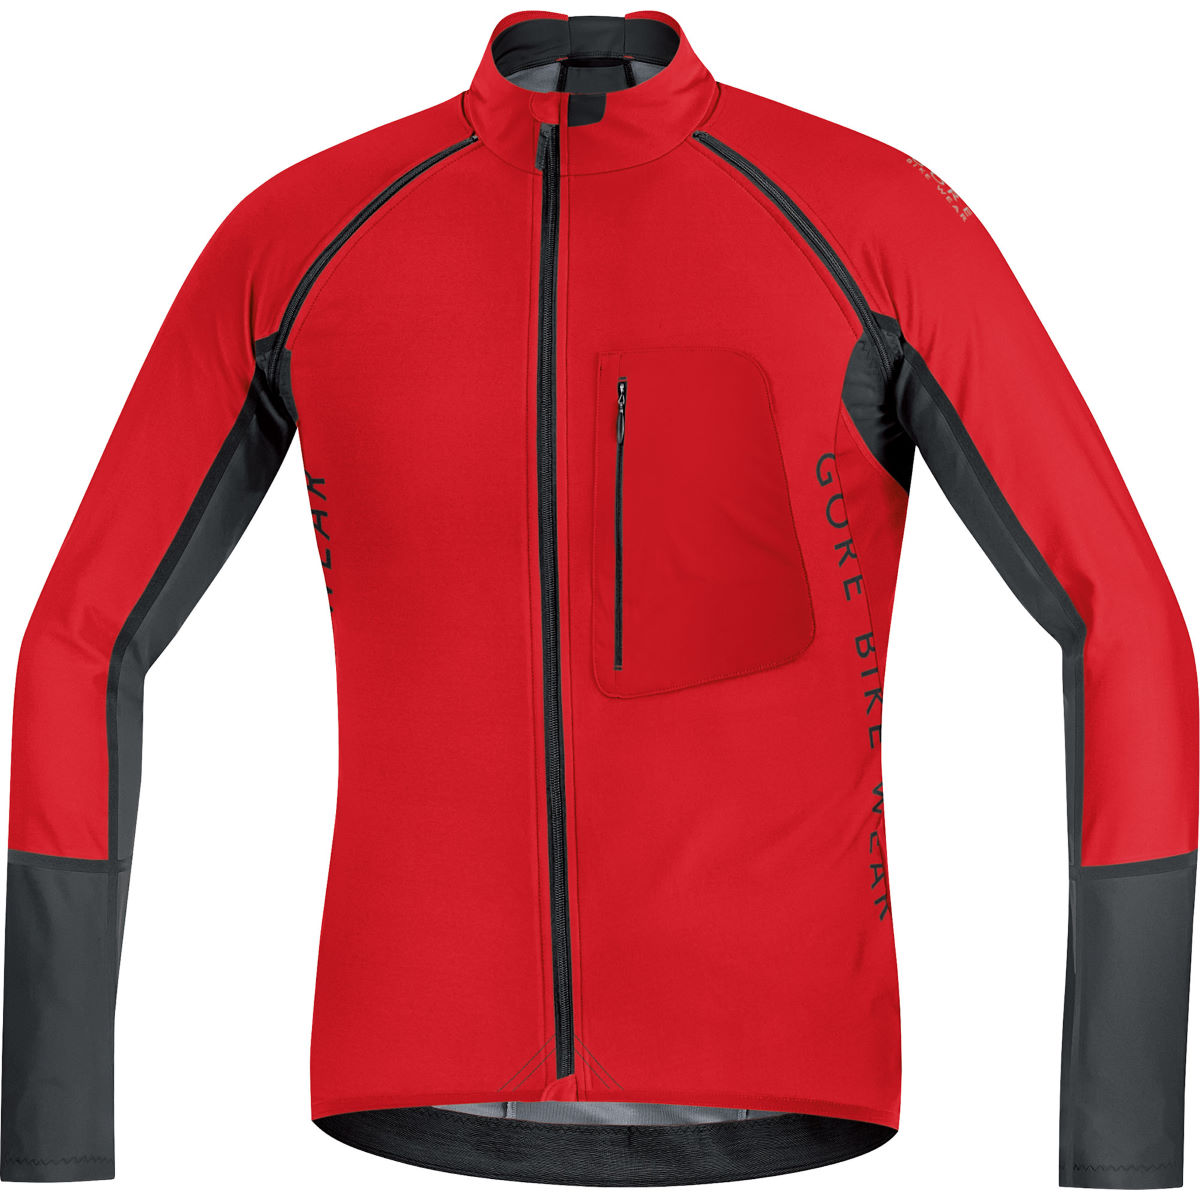 Veste Gore Bike Wear Alp-X Pro Windstopper Softshell (zippée) - XXL Rouge/Noir Coupe-vents vélo